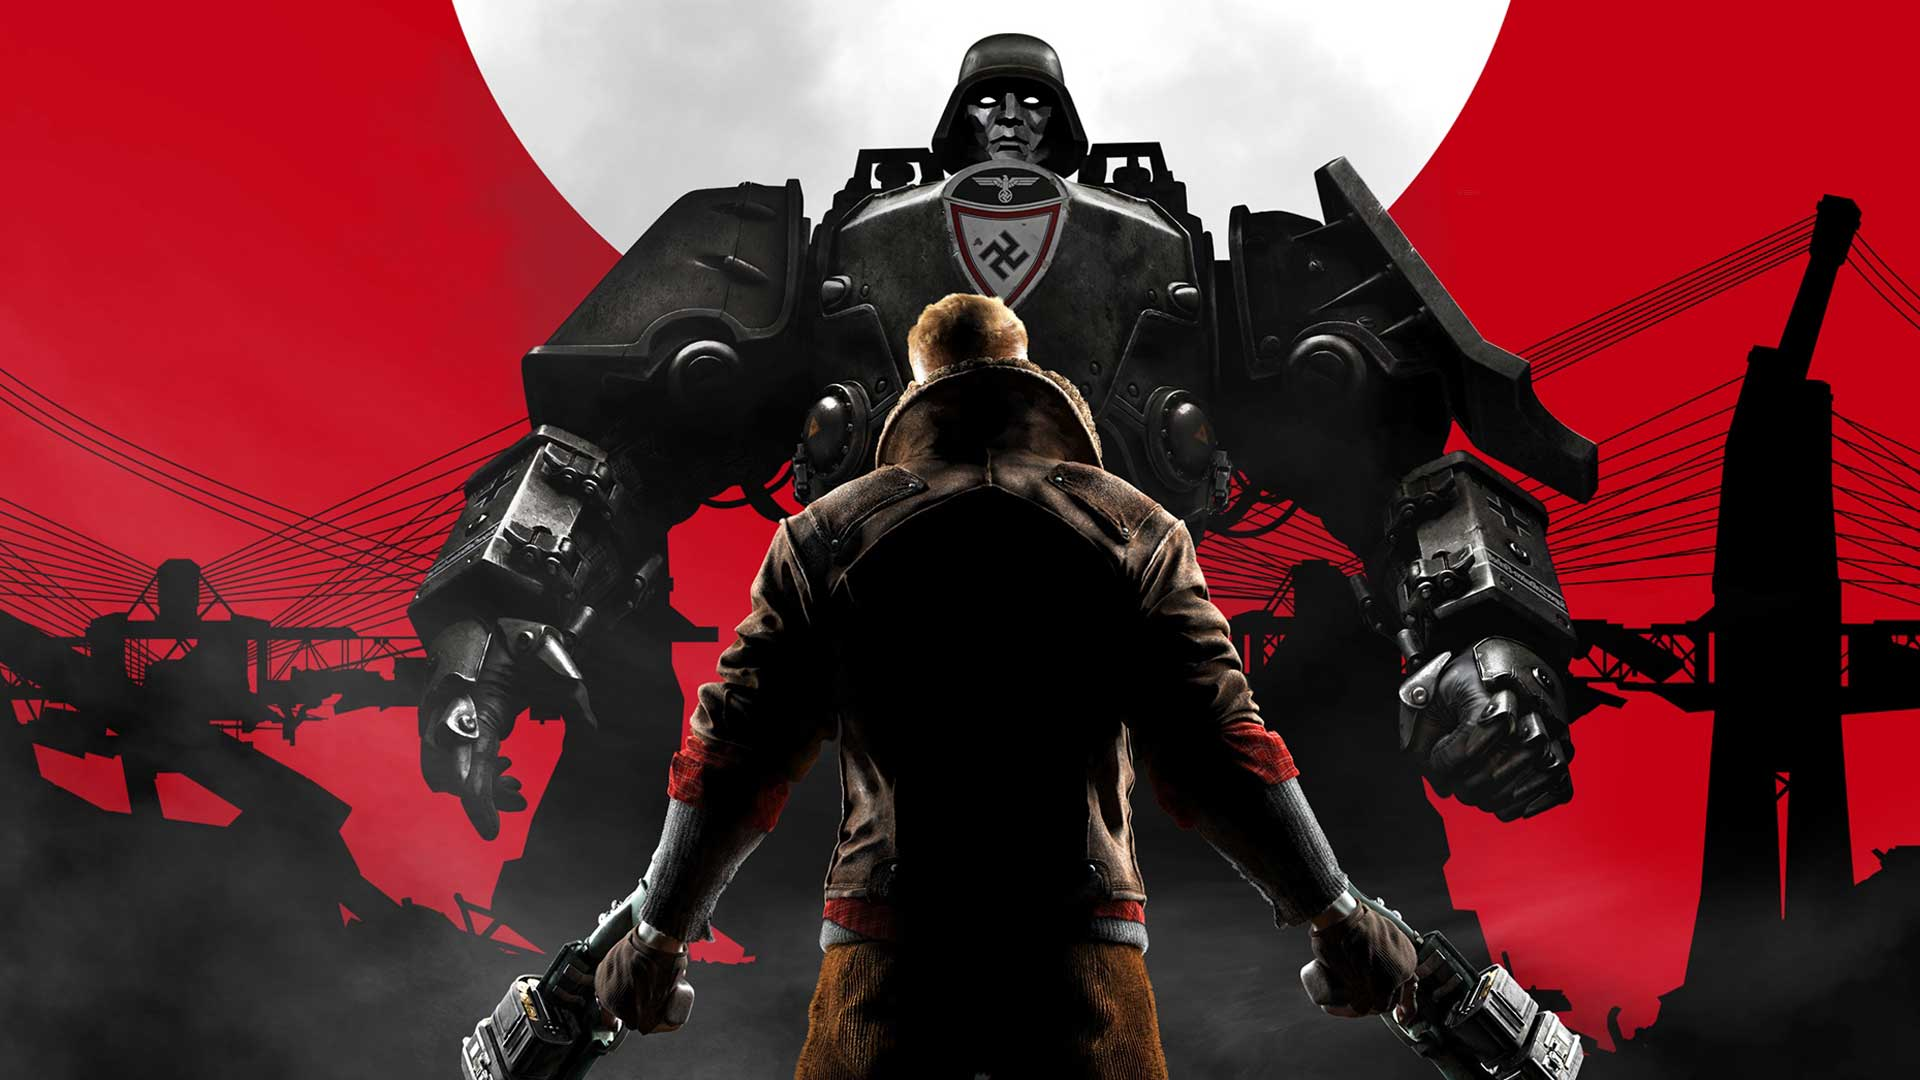 Гайд по игре Wolfenstein: The New Order - глава 4